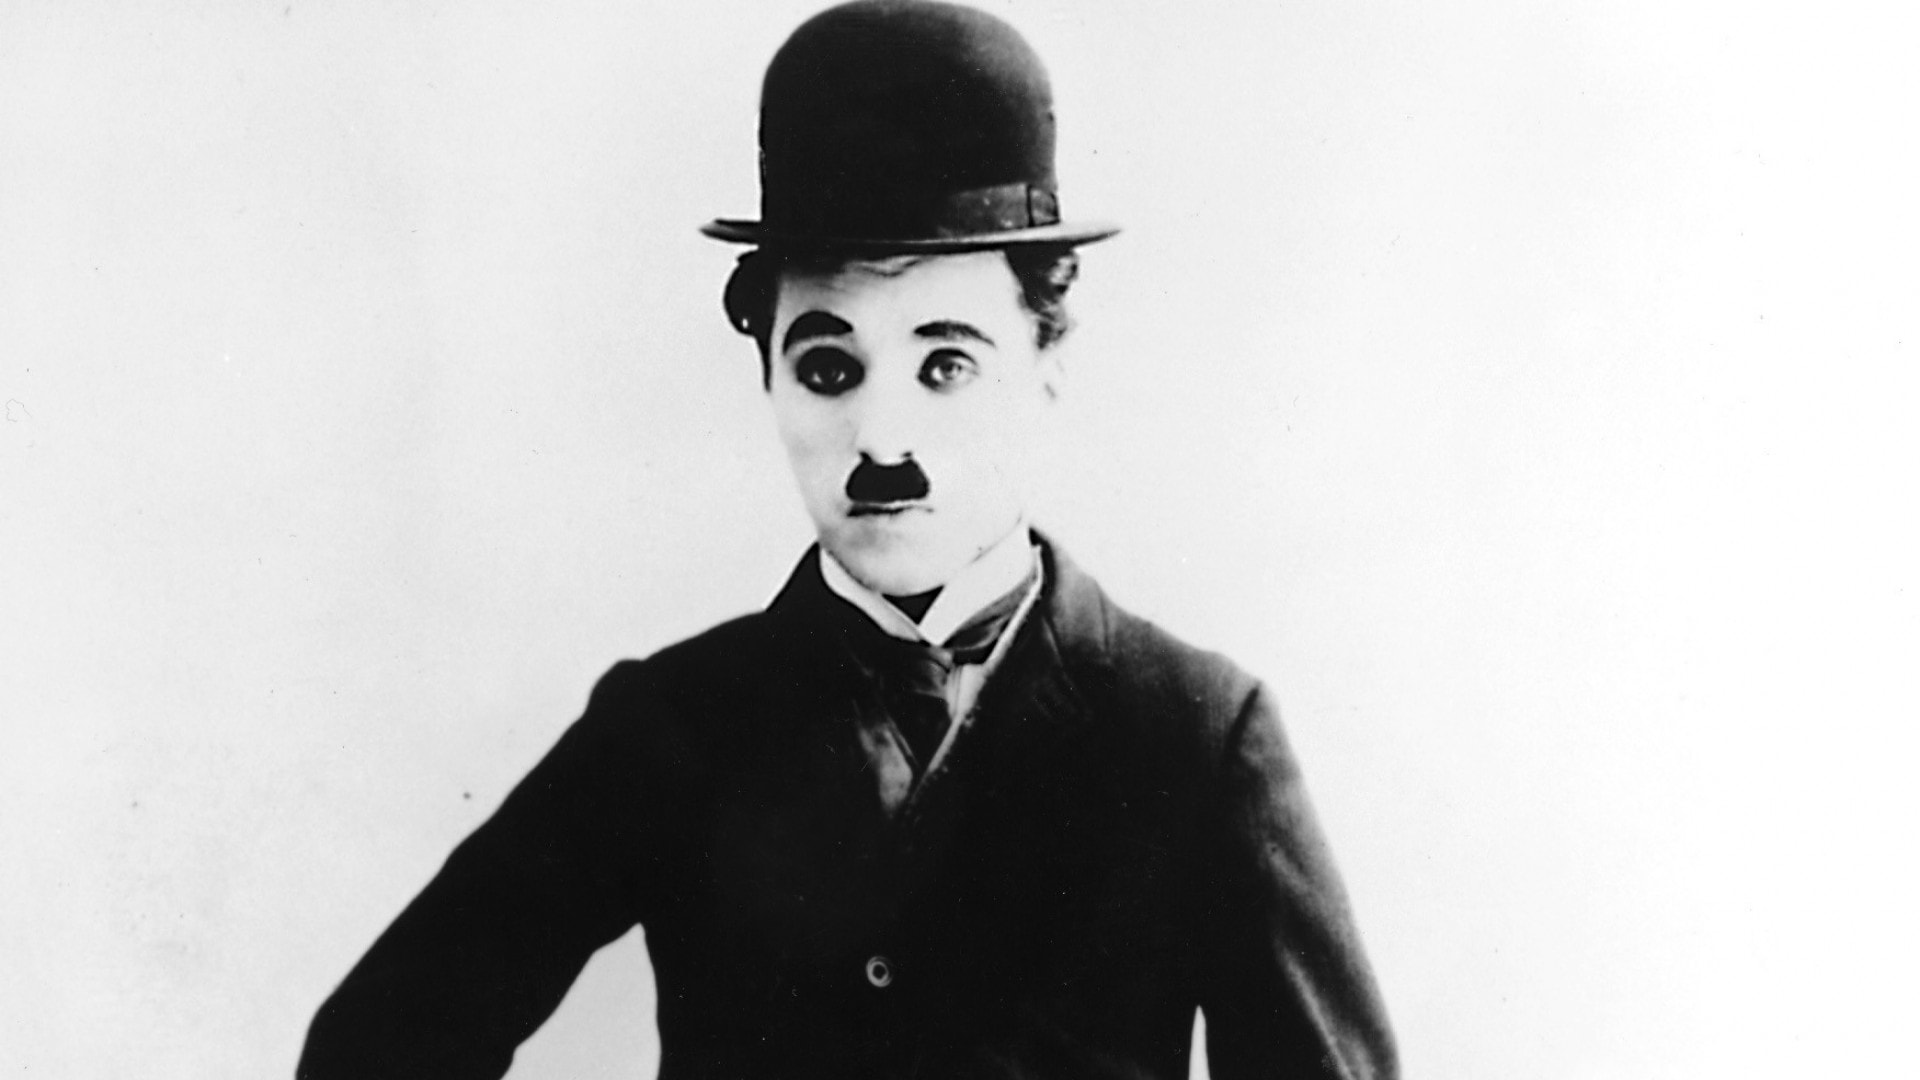 Charles Chaplin widescreen wallpapers